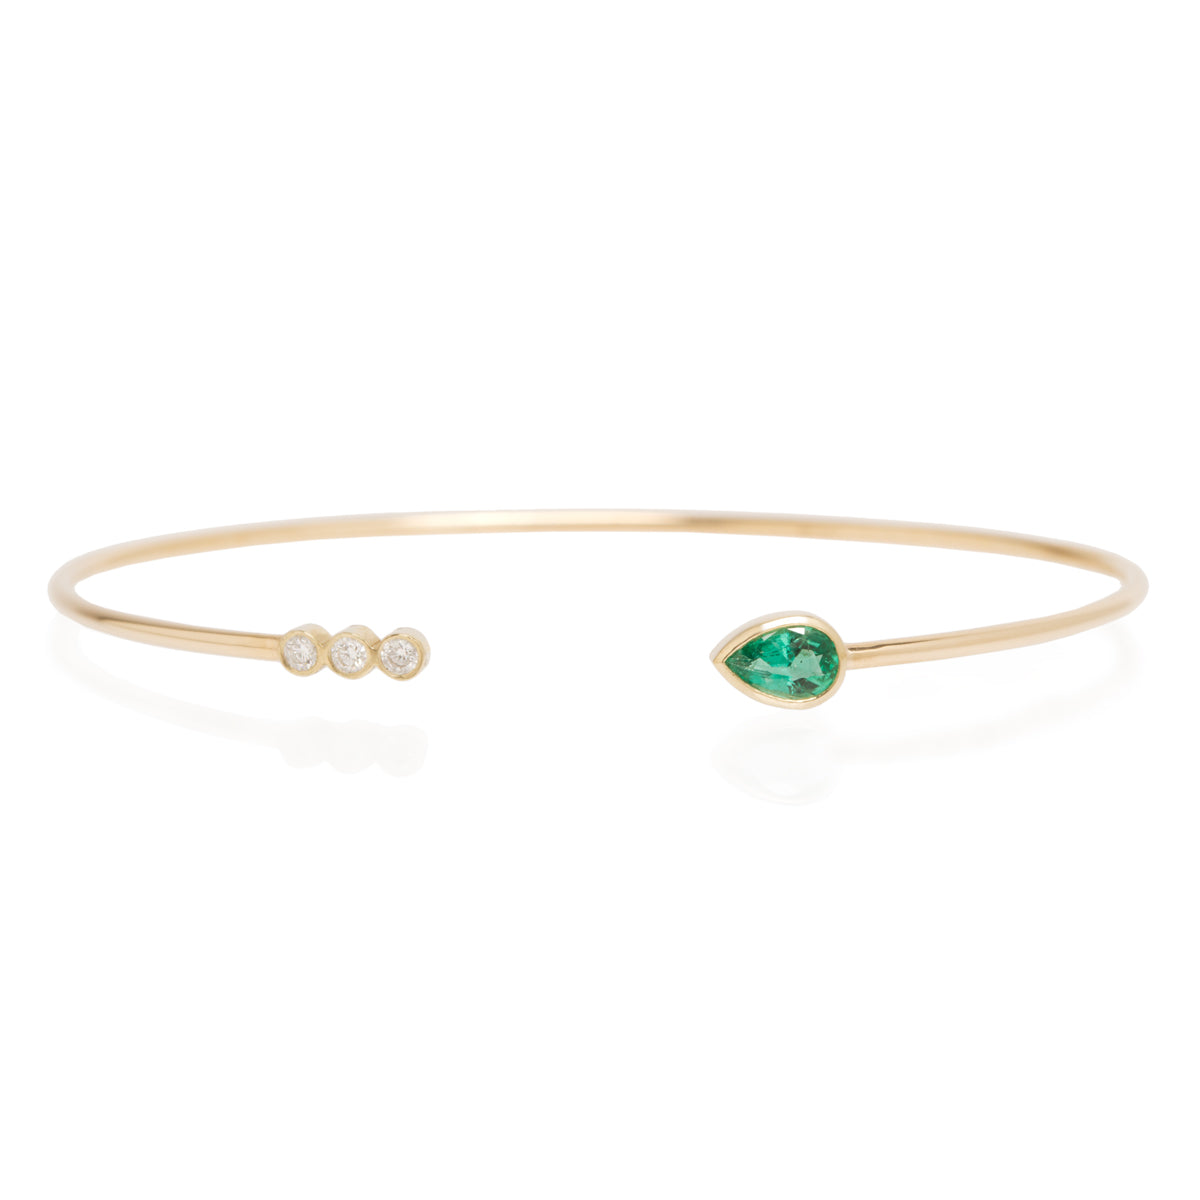 Zoë Chicco x Gemfields 14k emerald and 3 bezel diamond open cuff